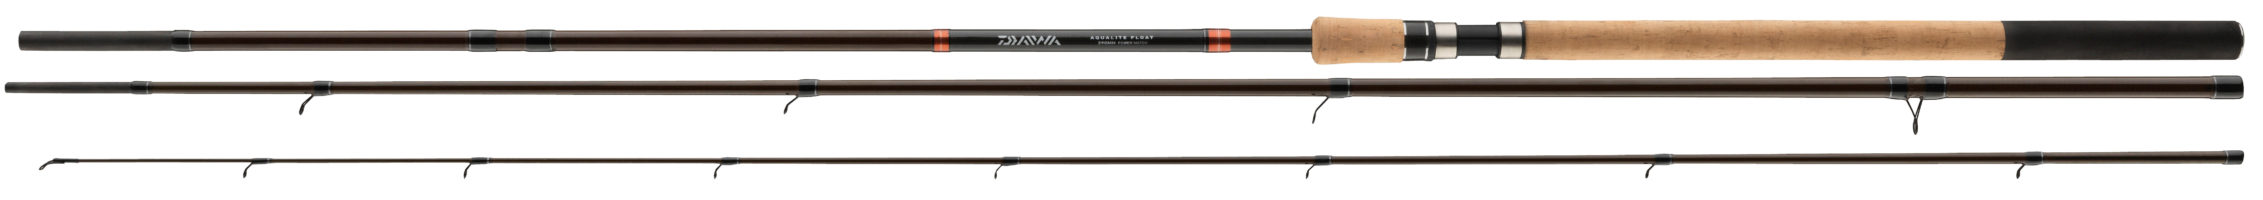 DAIWA AQUALITE POWER MATCH 390